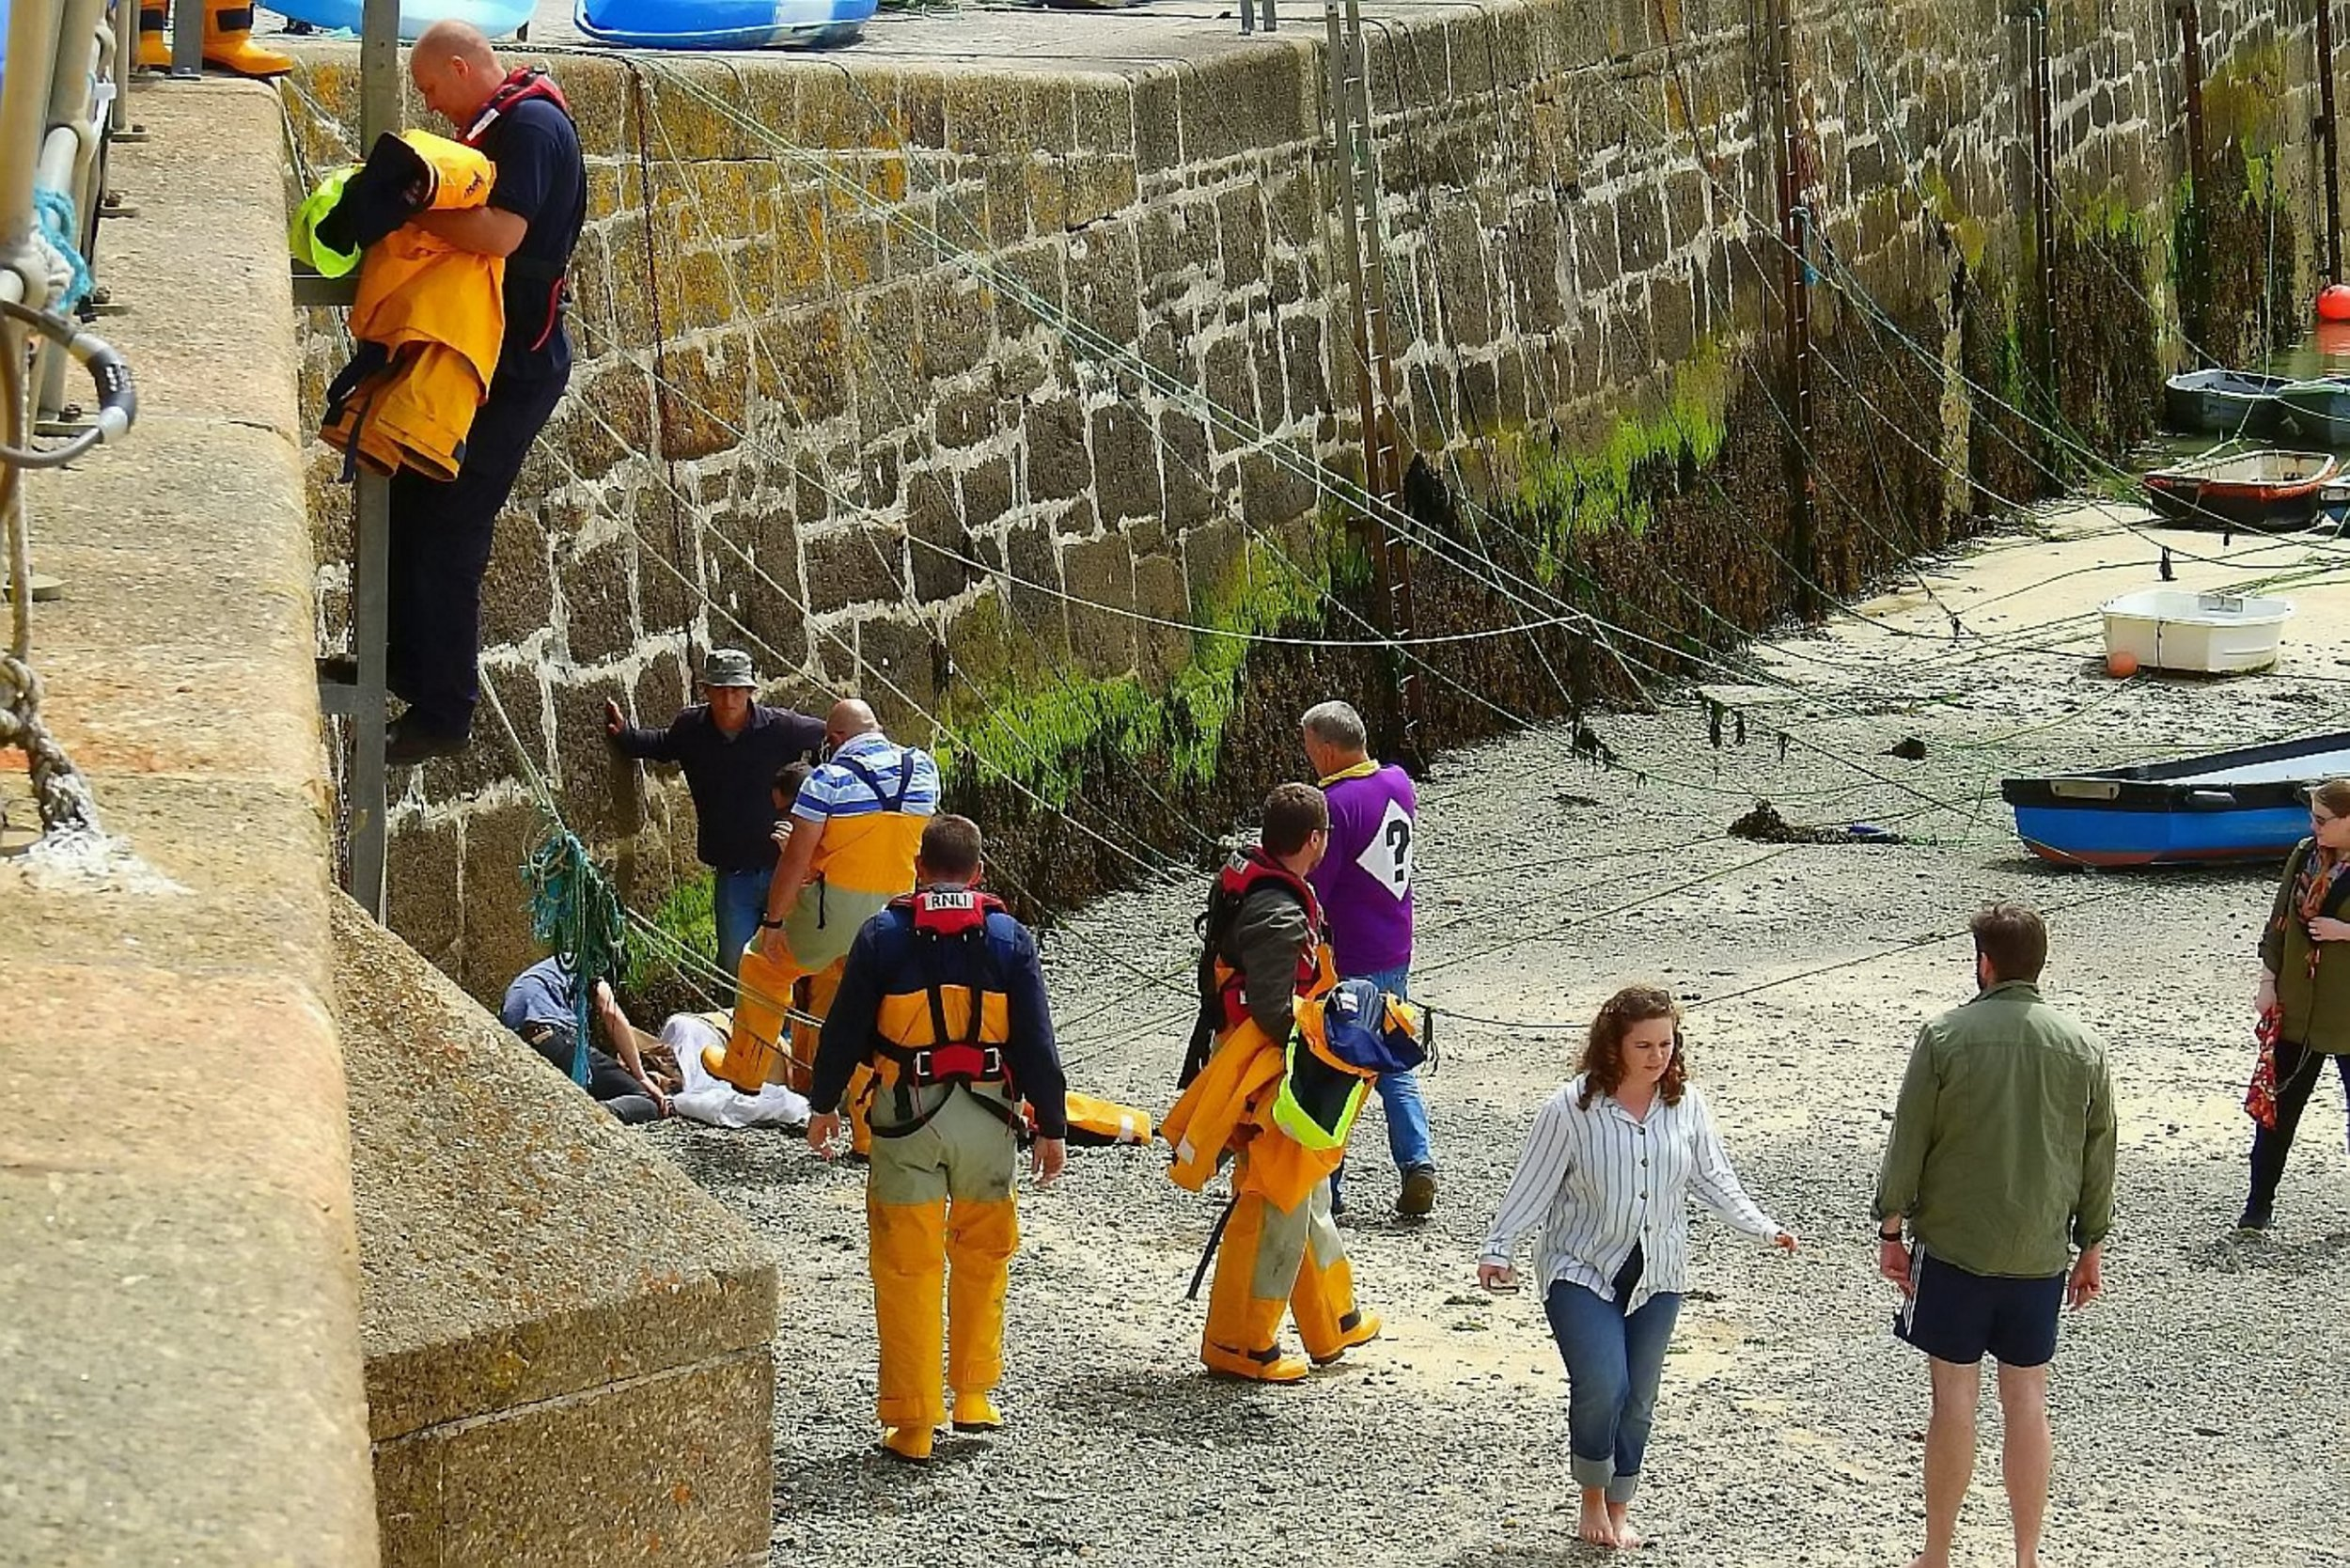 """The scene in St Ives where a girl fell off the sea wall after a seagull flew at her ice cream. See SWNS story SWGULL; A teenager was airlifted to hospital with suspected spinal injuries after plunging 15ft off a harbour wall in St Ives while trying to fend off an attacking seagull. The 18-year-old was eating an ice cream on Smeaton's Pier on Tuesday afternoon when she suddenly fell off the edge onto the beach below. Photographer Chris Oates was at the harbour master's office when he saw the incident and people rush to help the young woman. Mr Oates said: """"There was a young 18-year-old girl sat eating an ice cream near the harbour master's office on Smeaton's Pier. I saw some gulls attacking holiday makers and then they had a go at her and she just fell four to five meters."""